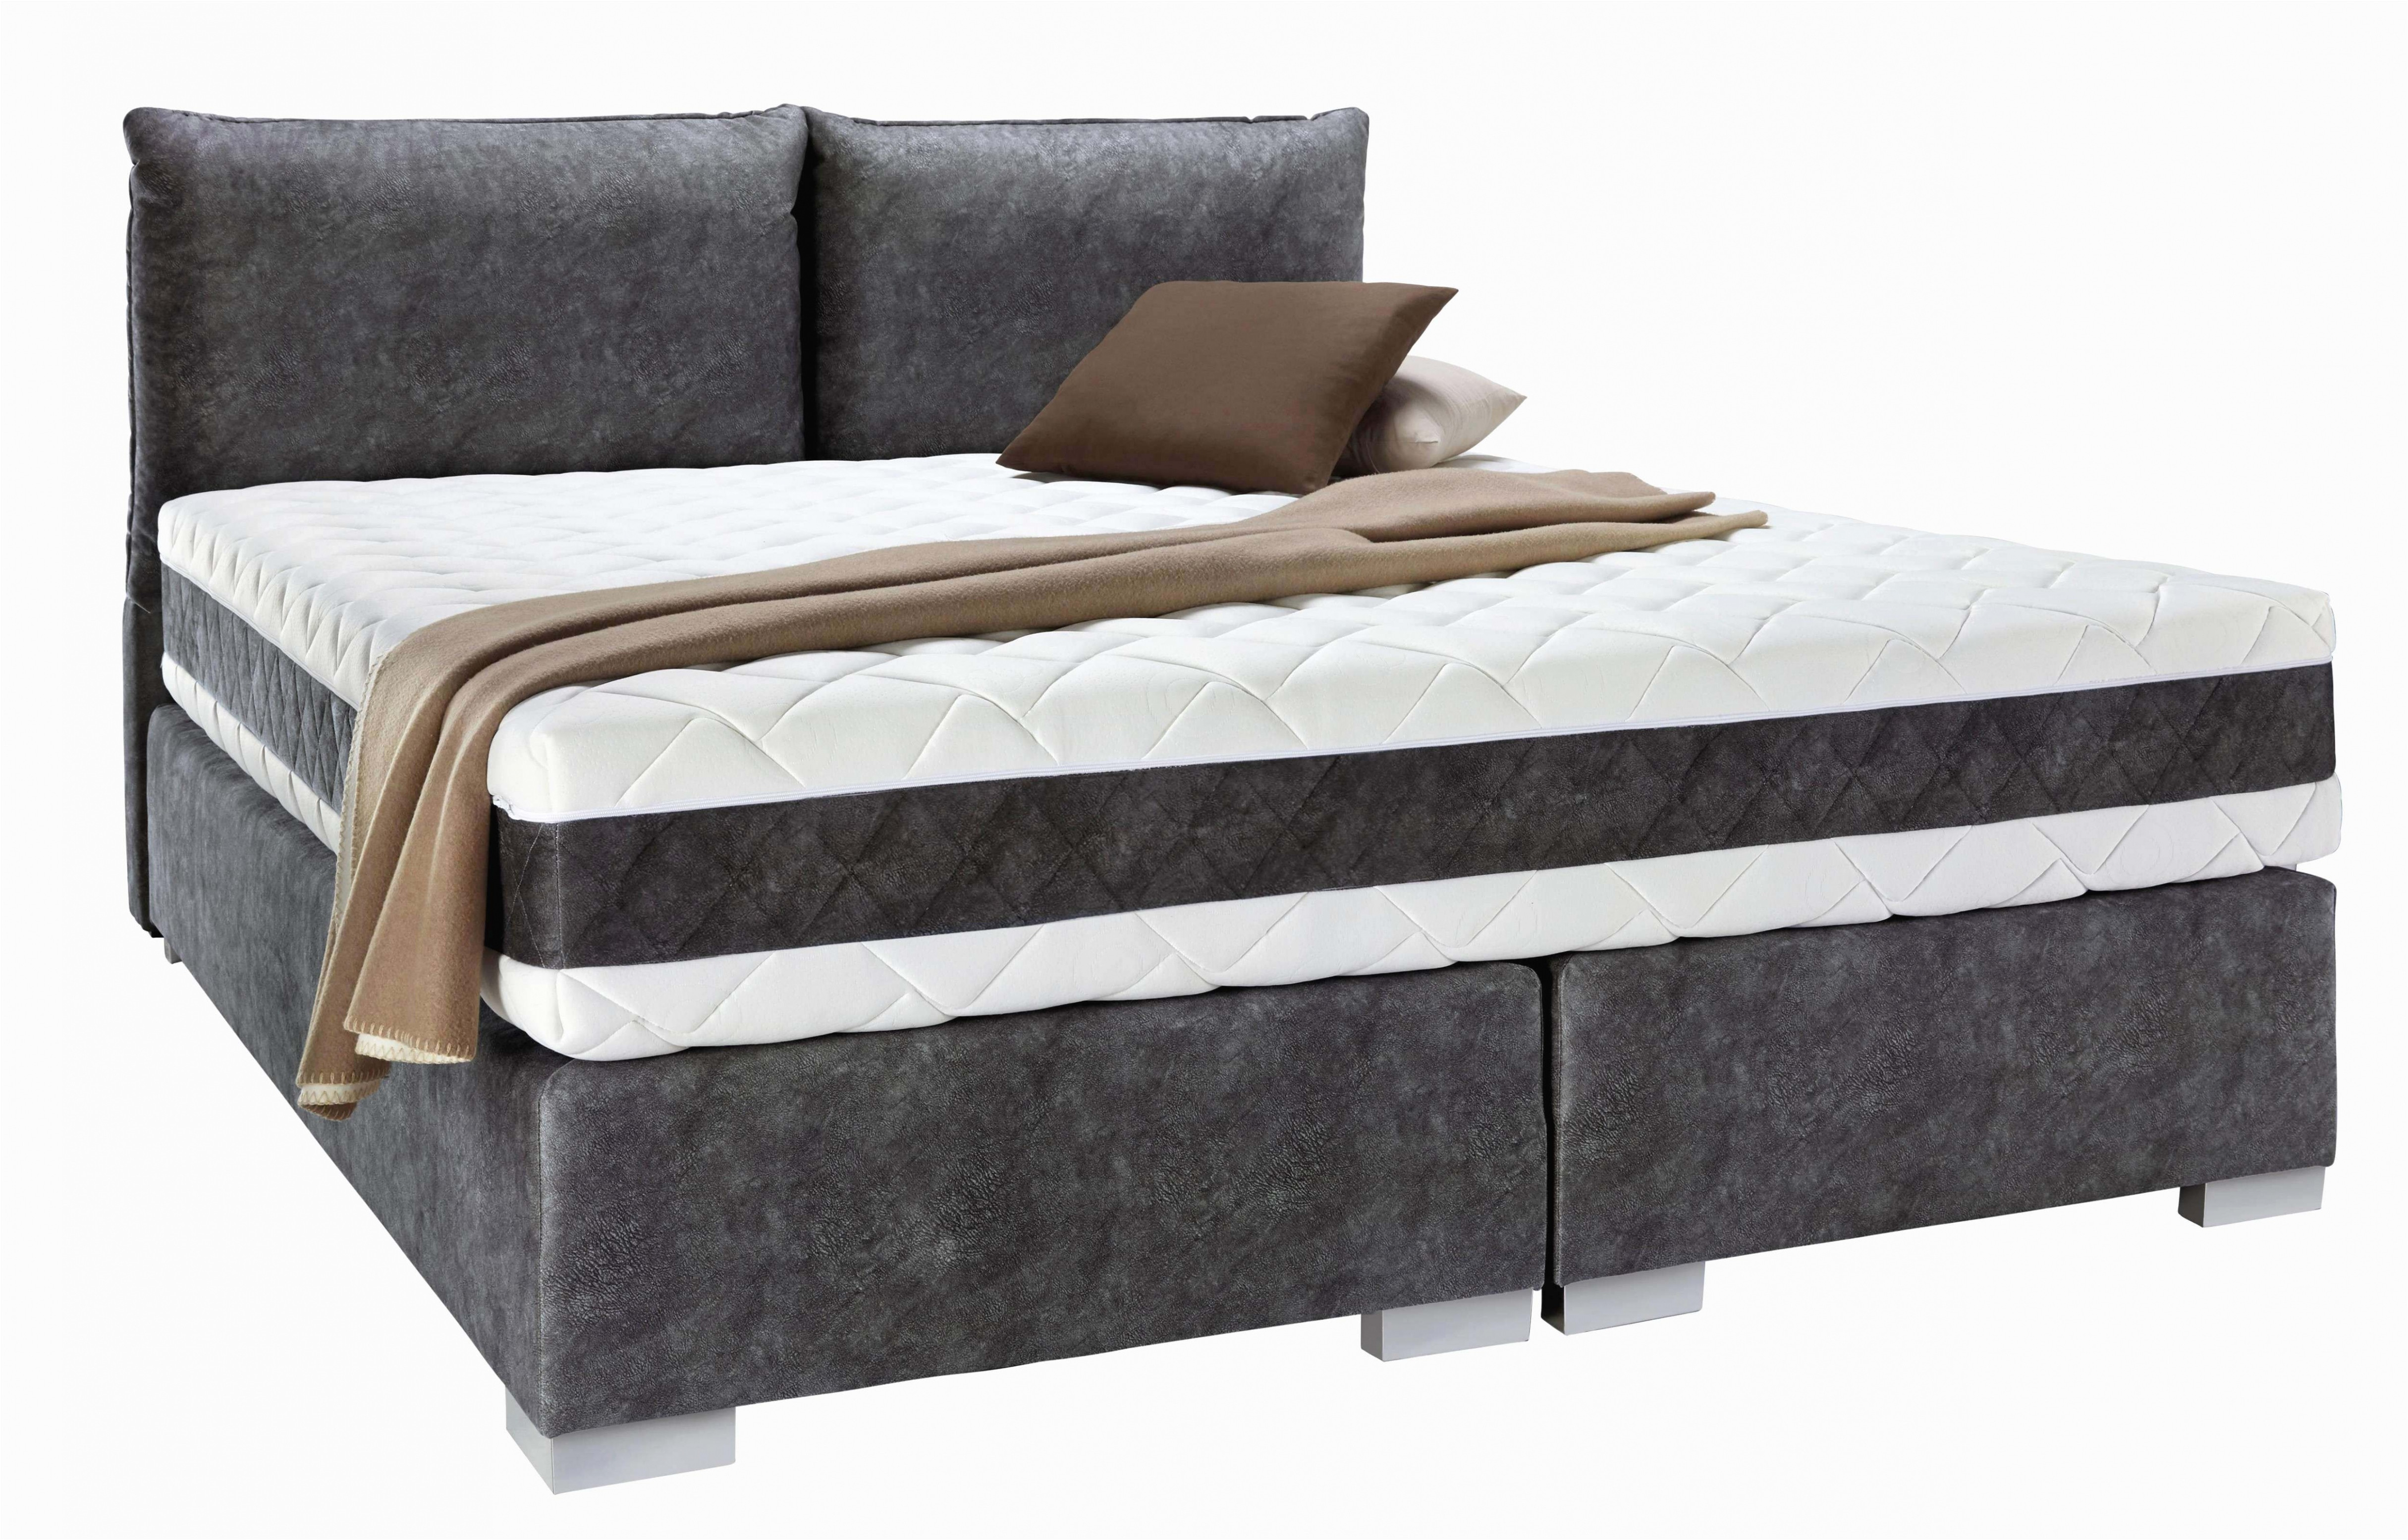 full bed frame new frame fresh schlafliege ikea inspirierend ikea boxspring 0d